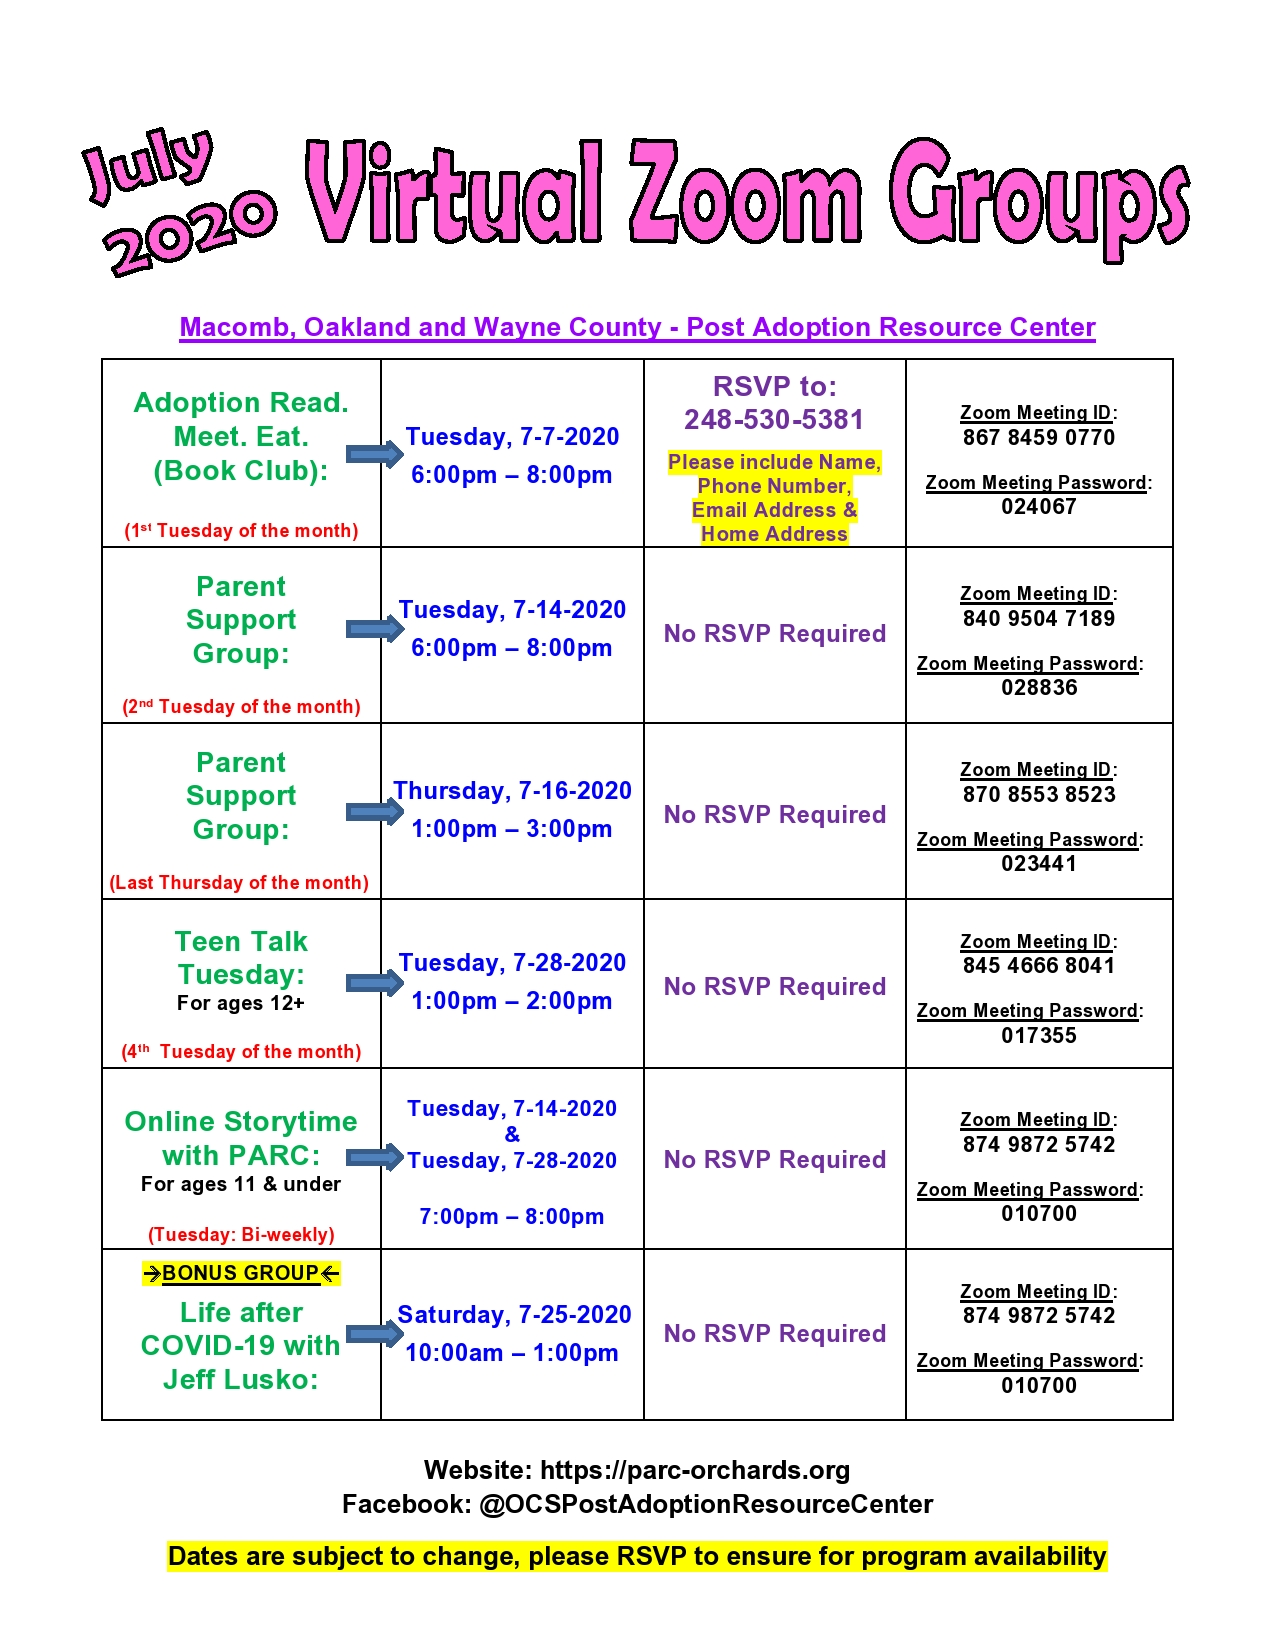 July 2020-wayne-oakland-macomb PARC virtual support group dates-page0001